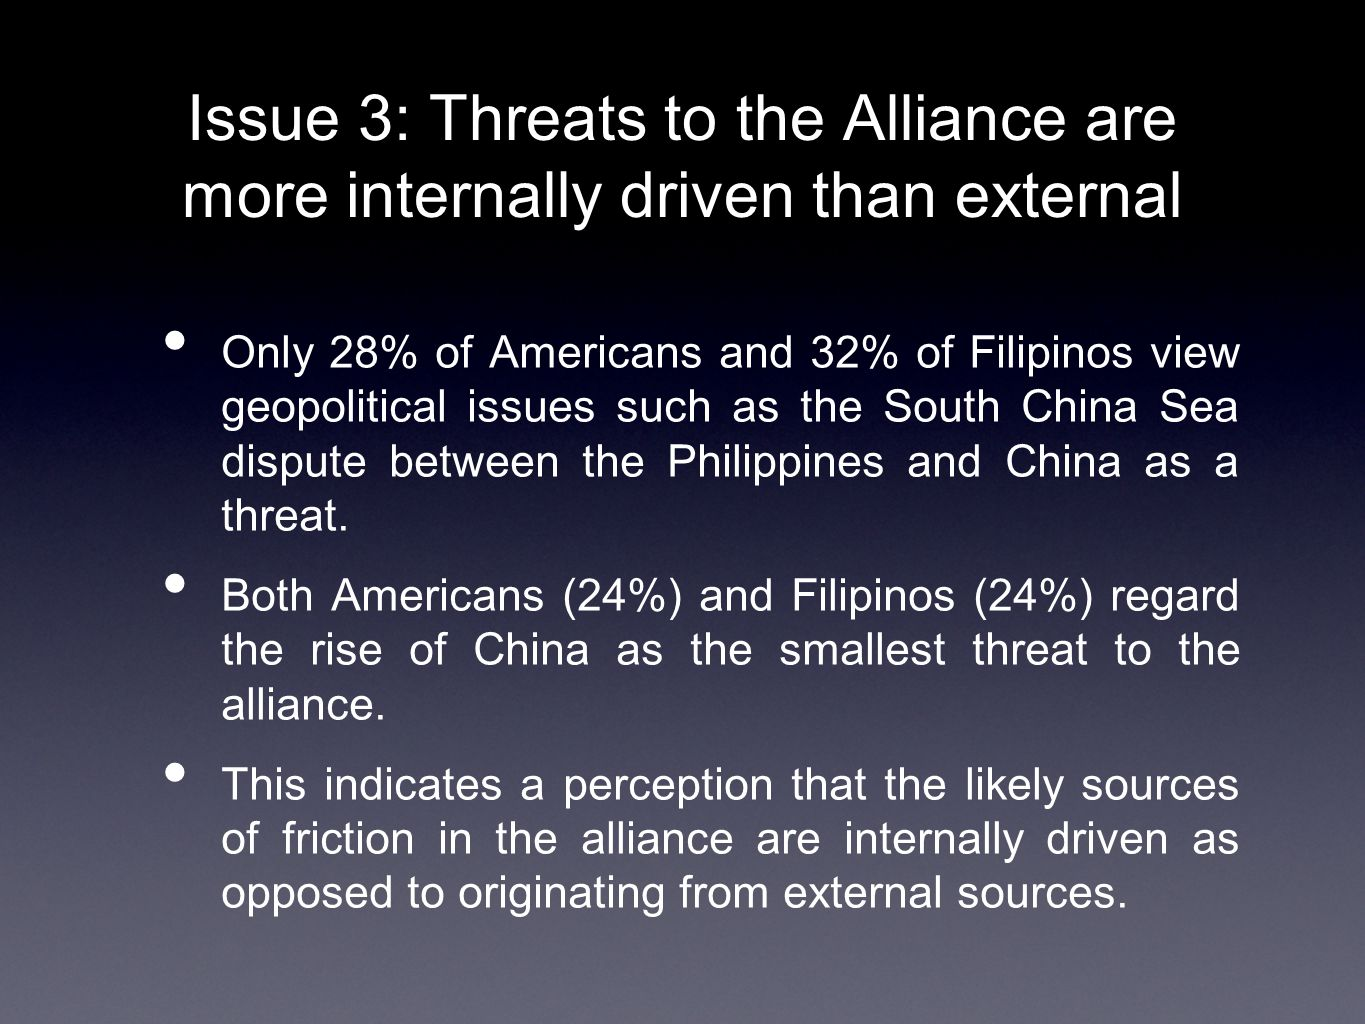 Issue 3: Threats to the Alliance are more internally driven than external Only 28% of Americans and 32% of Filipinos view geopolitical issues such as the South China Sea dispute between the Philippines and China as a threat.